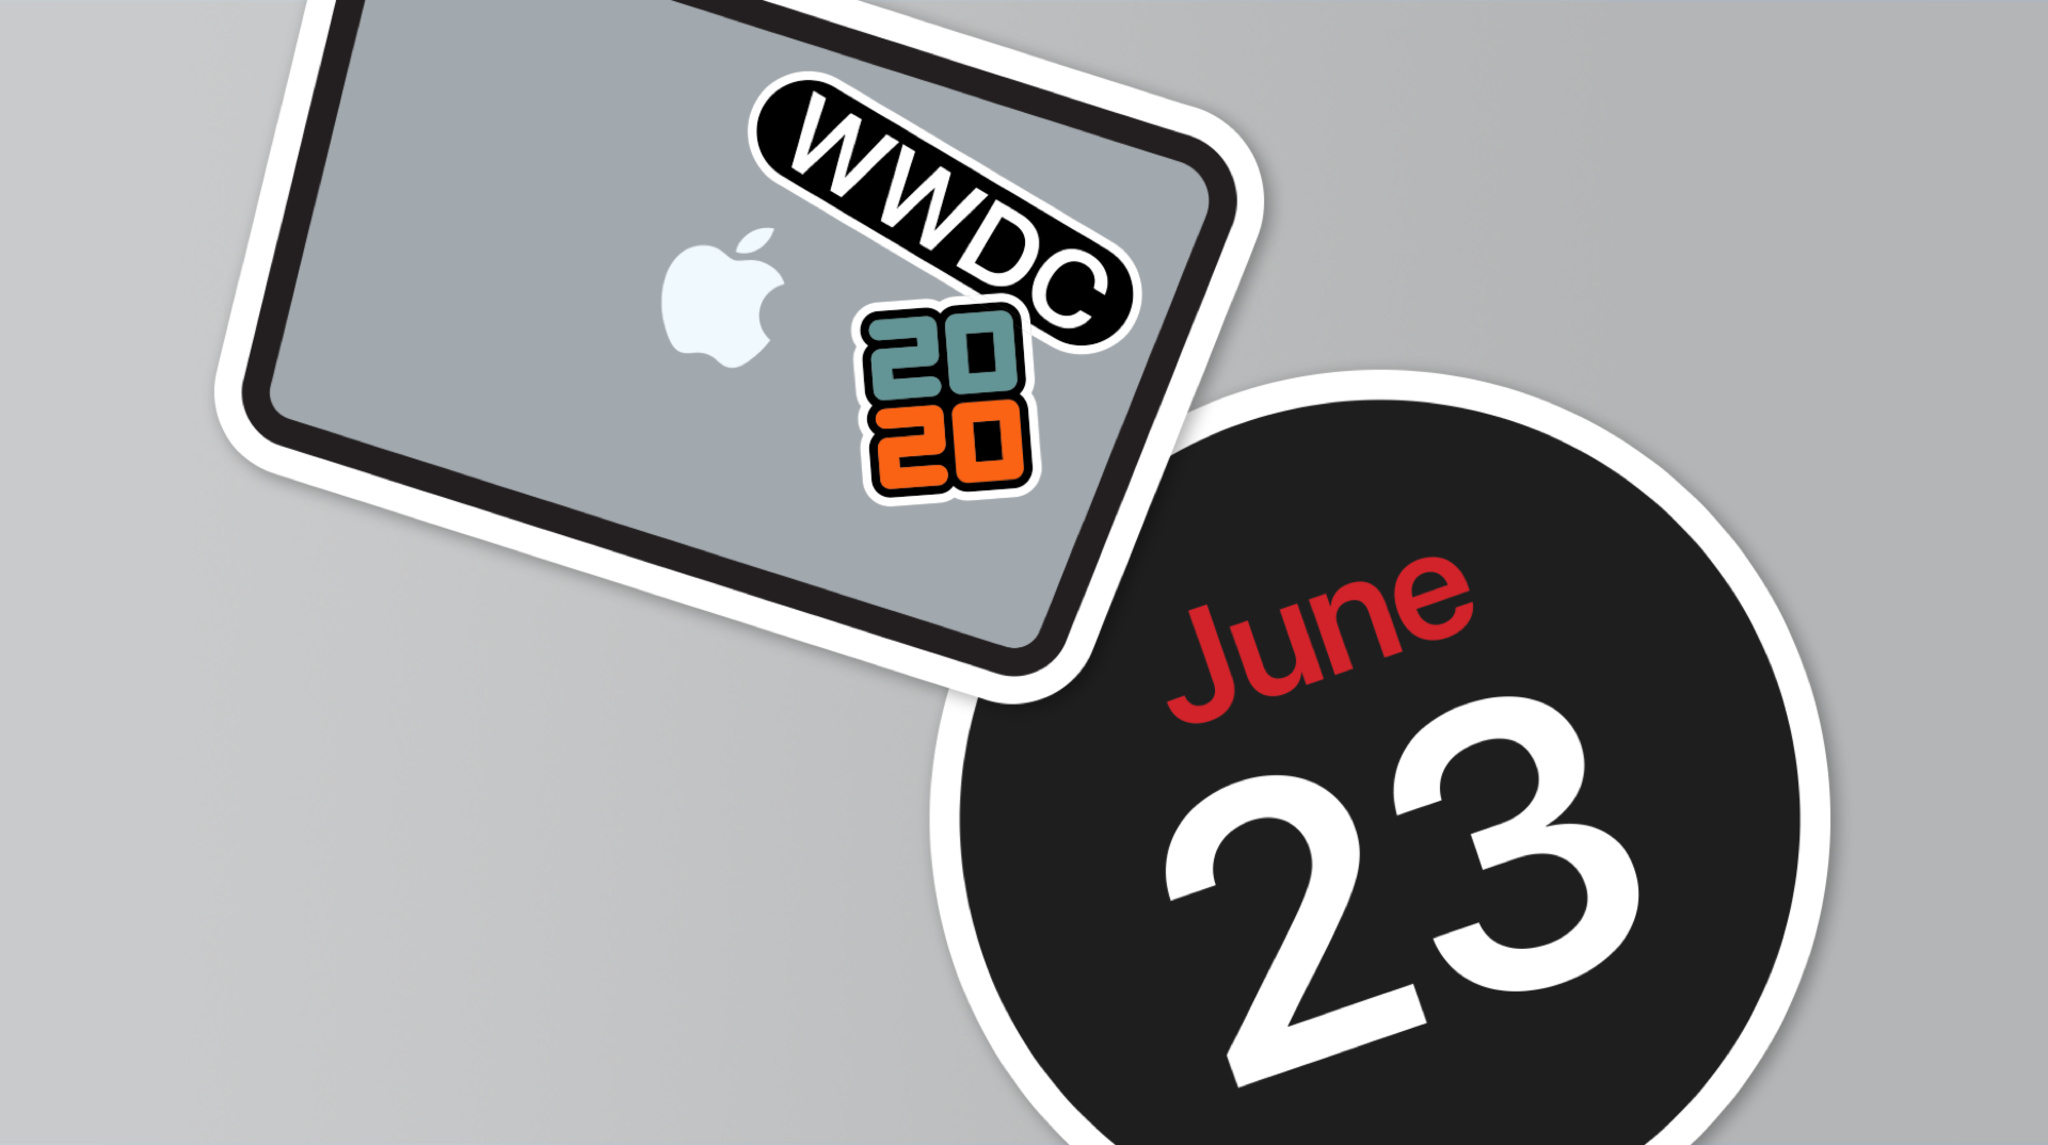 MacBook with June 23 sticker and hello WWDC sticker